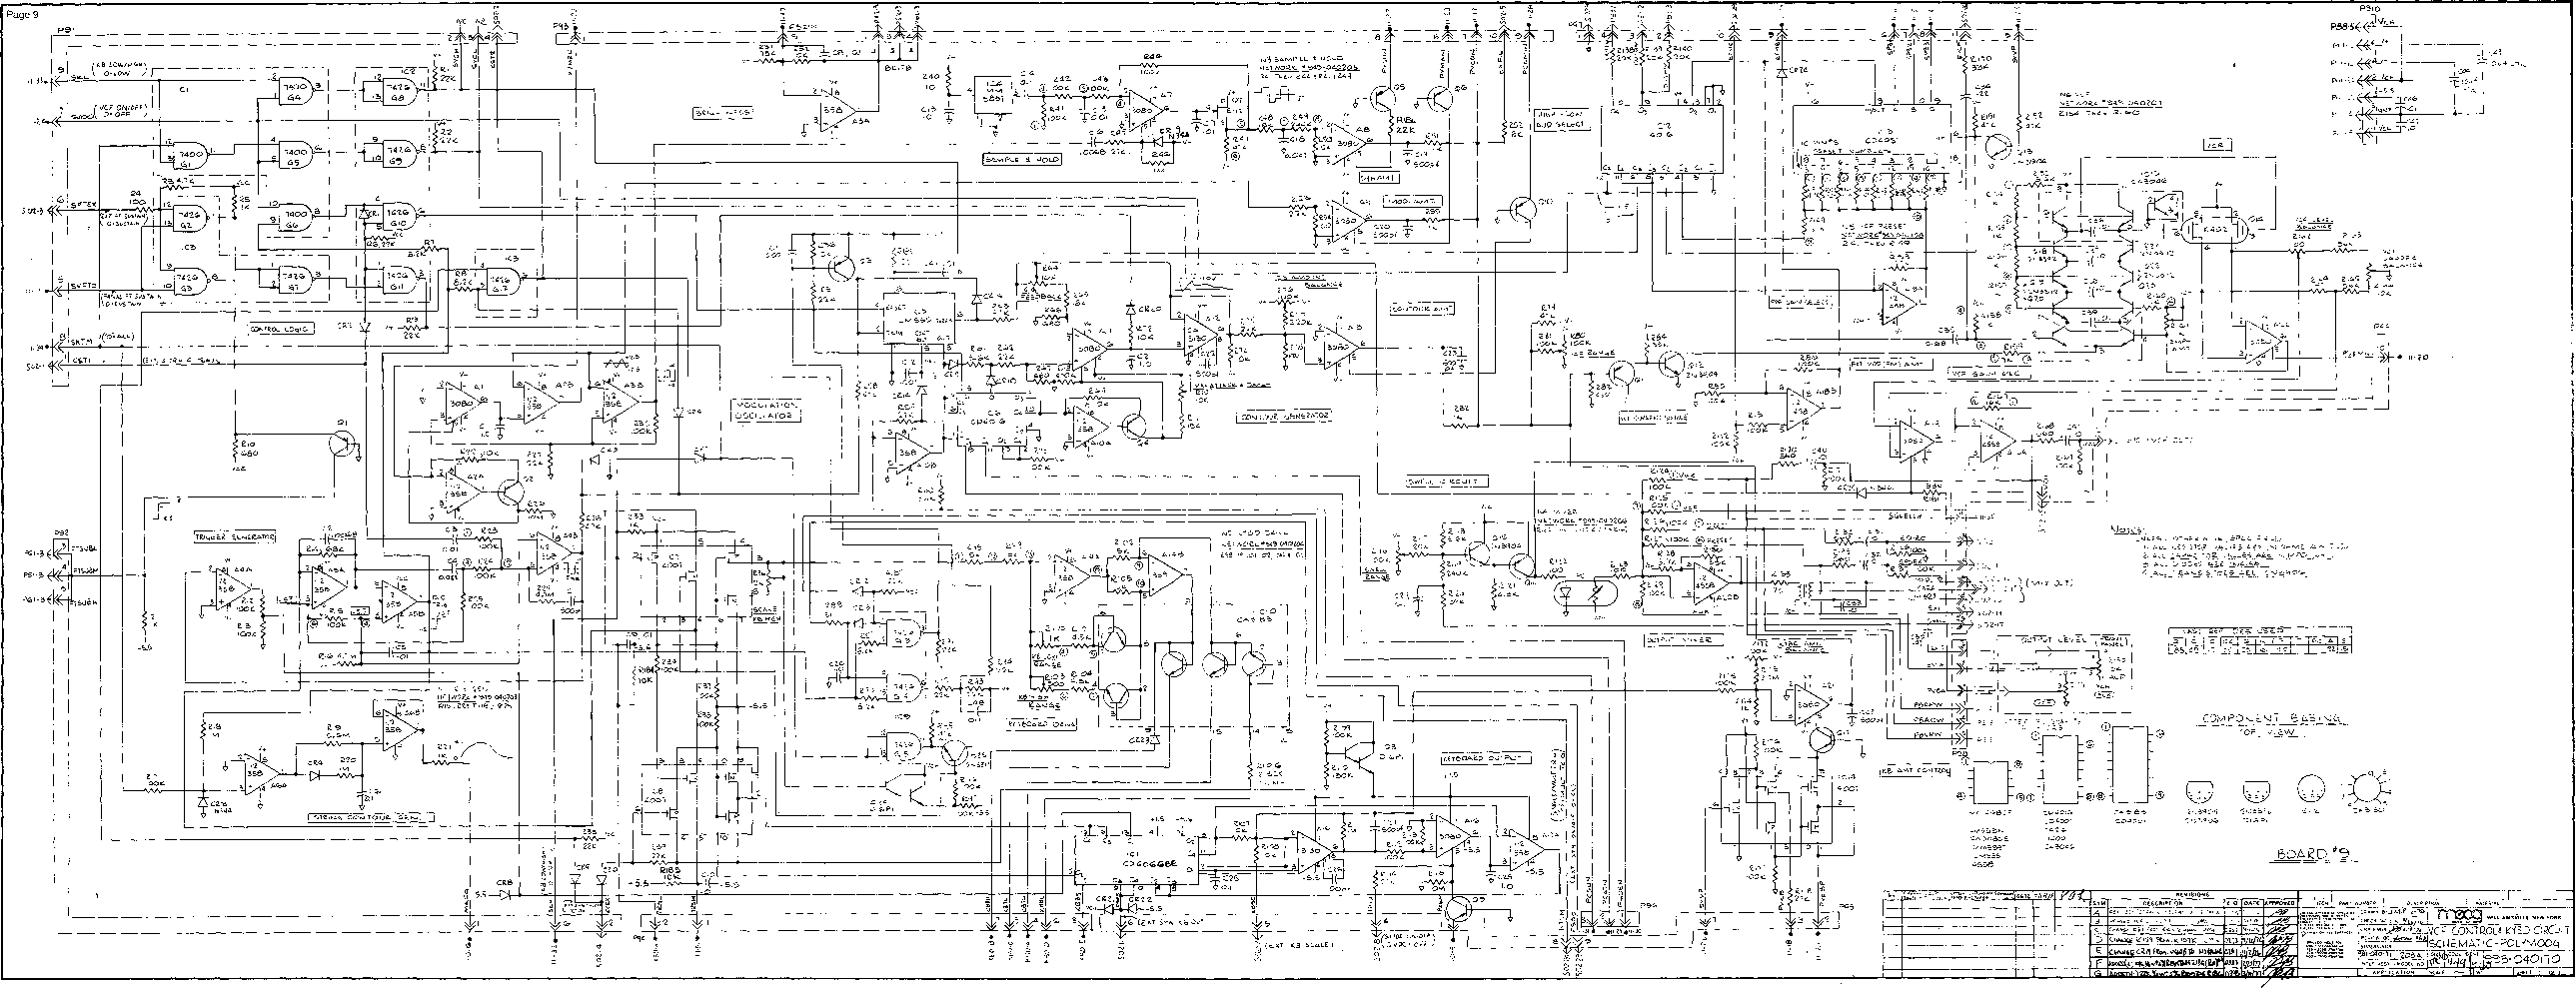 amt 600 wiring diagram amt wiring diagrams amt 600 wiring diagram